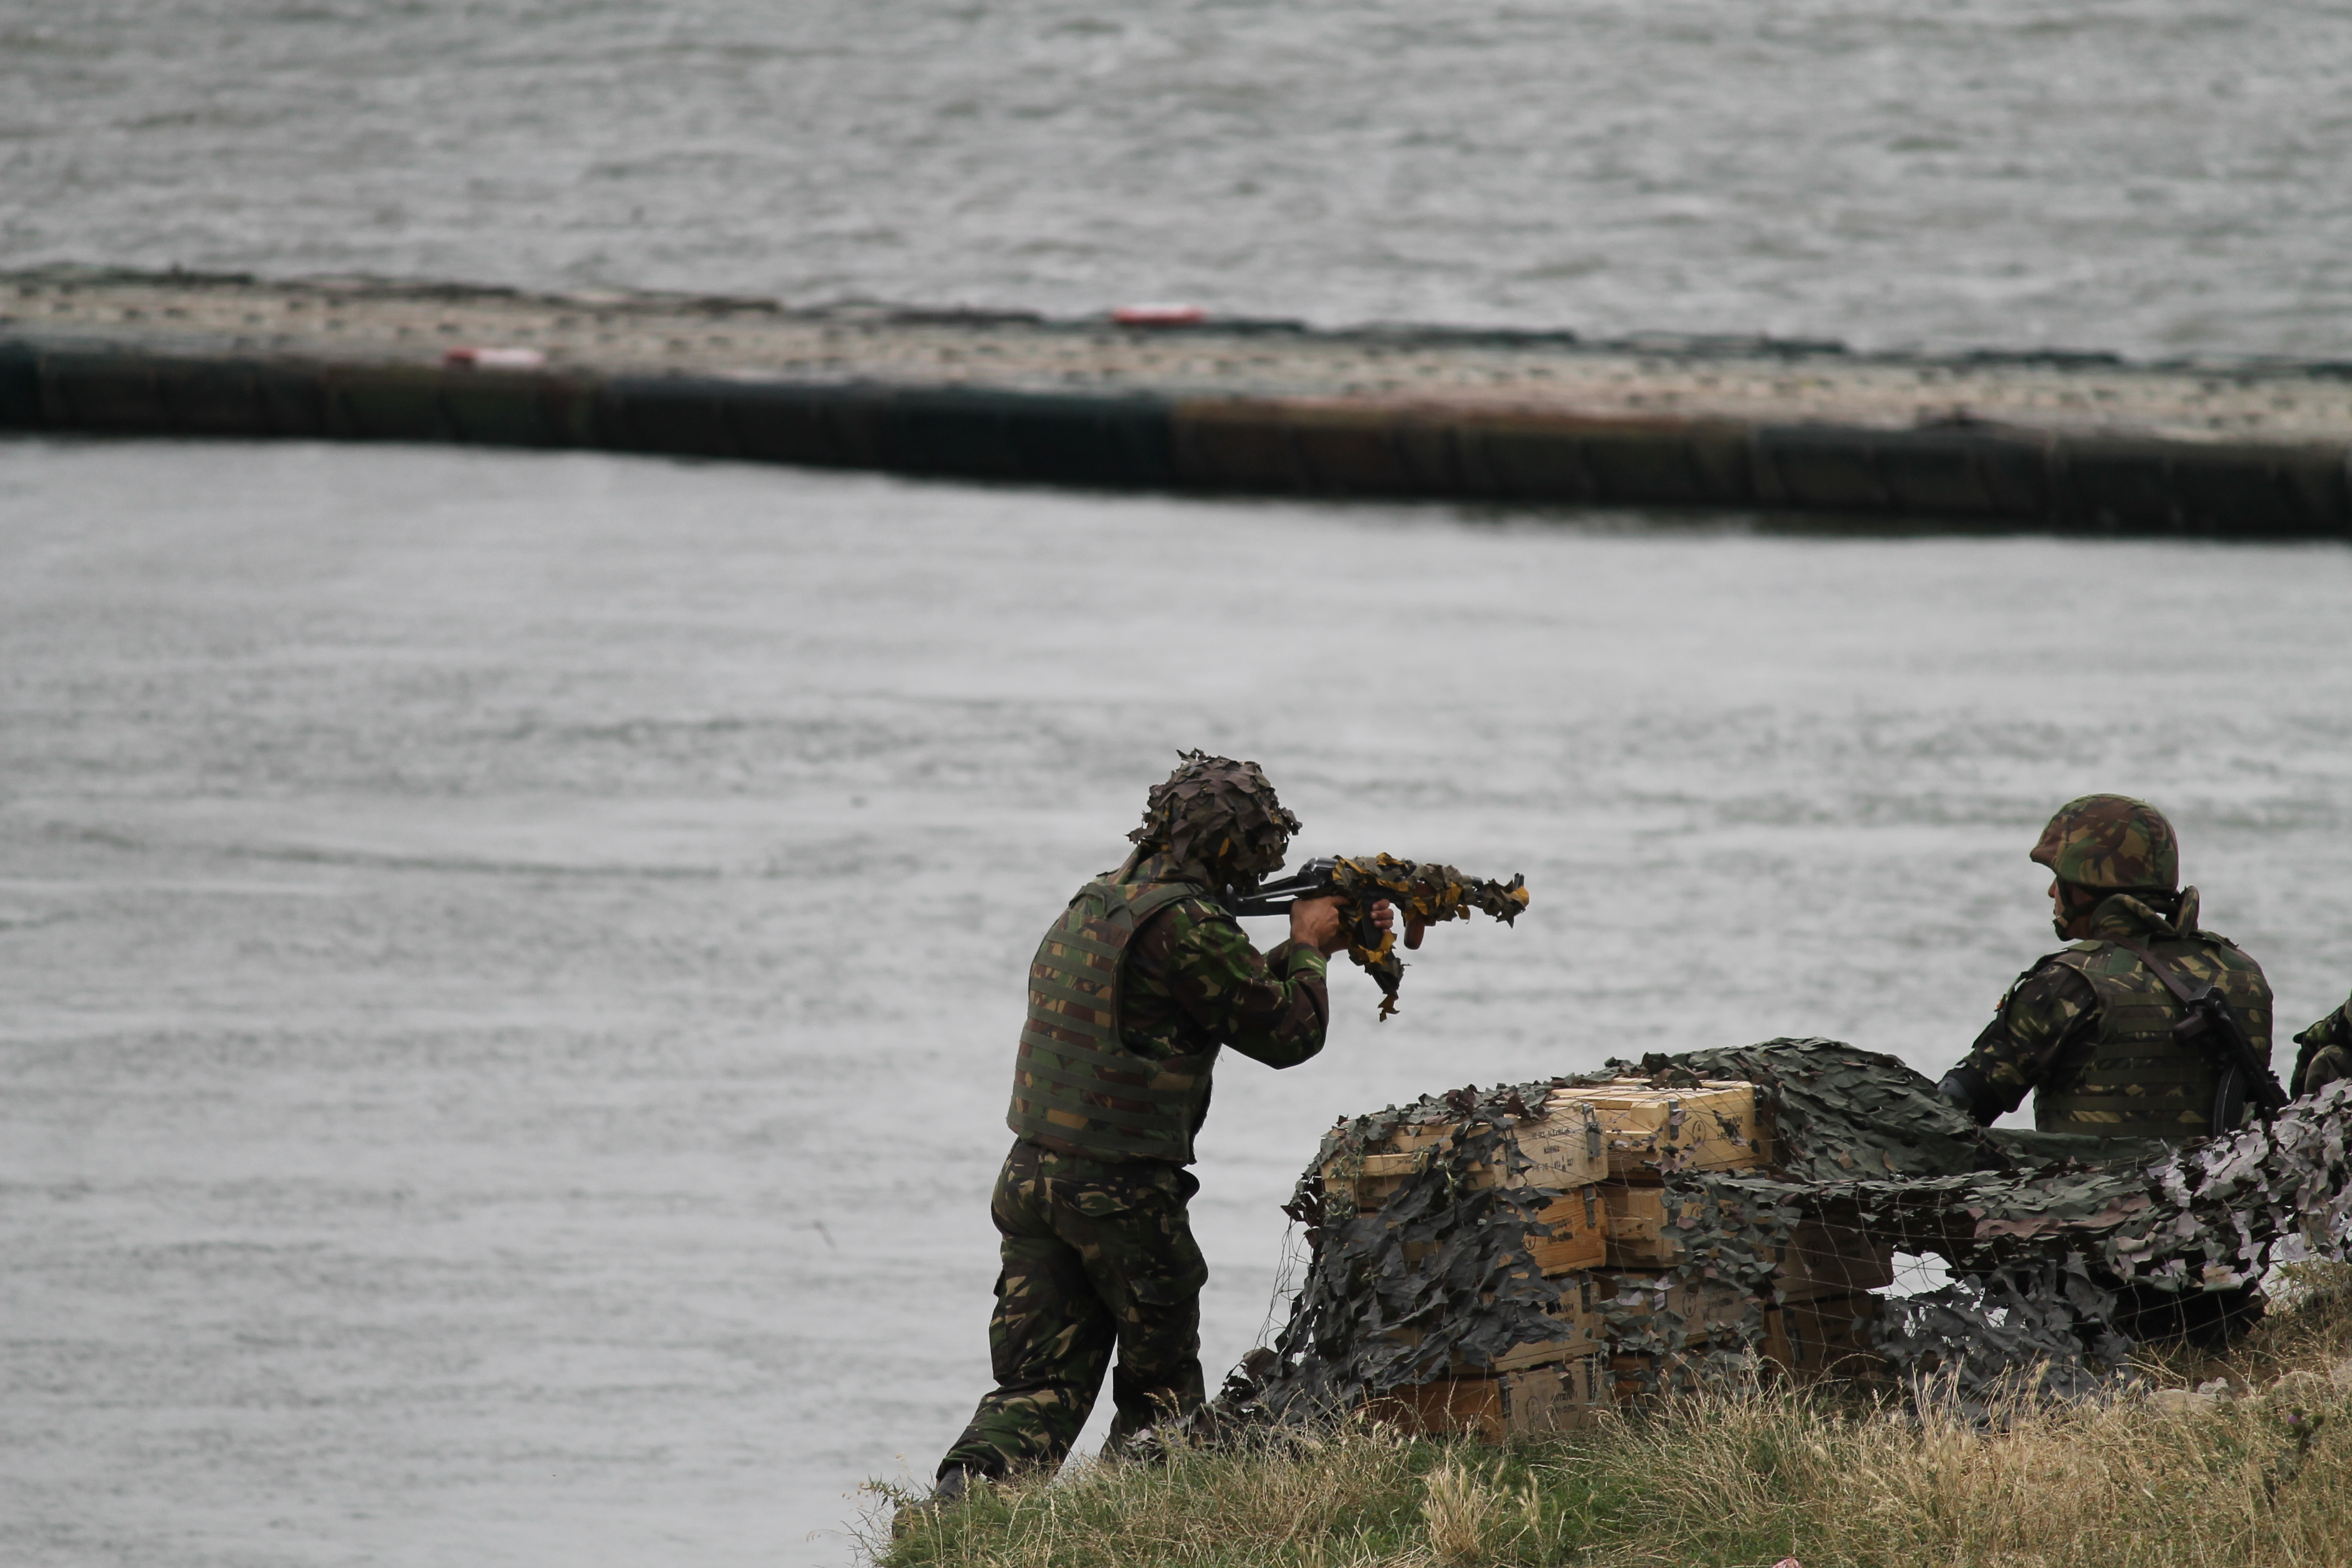 Troops from Romania defend the banks of the Danube and the bridge erected overnight as the exercise heats up. (Jen Judson/Staff)